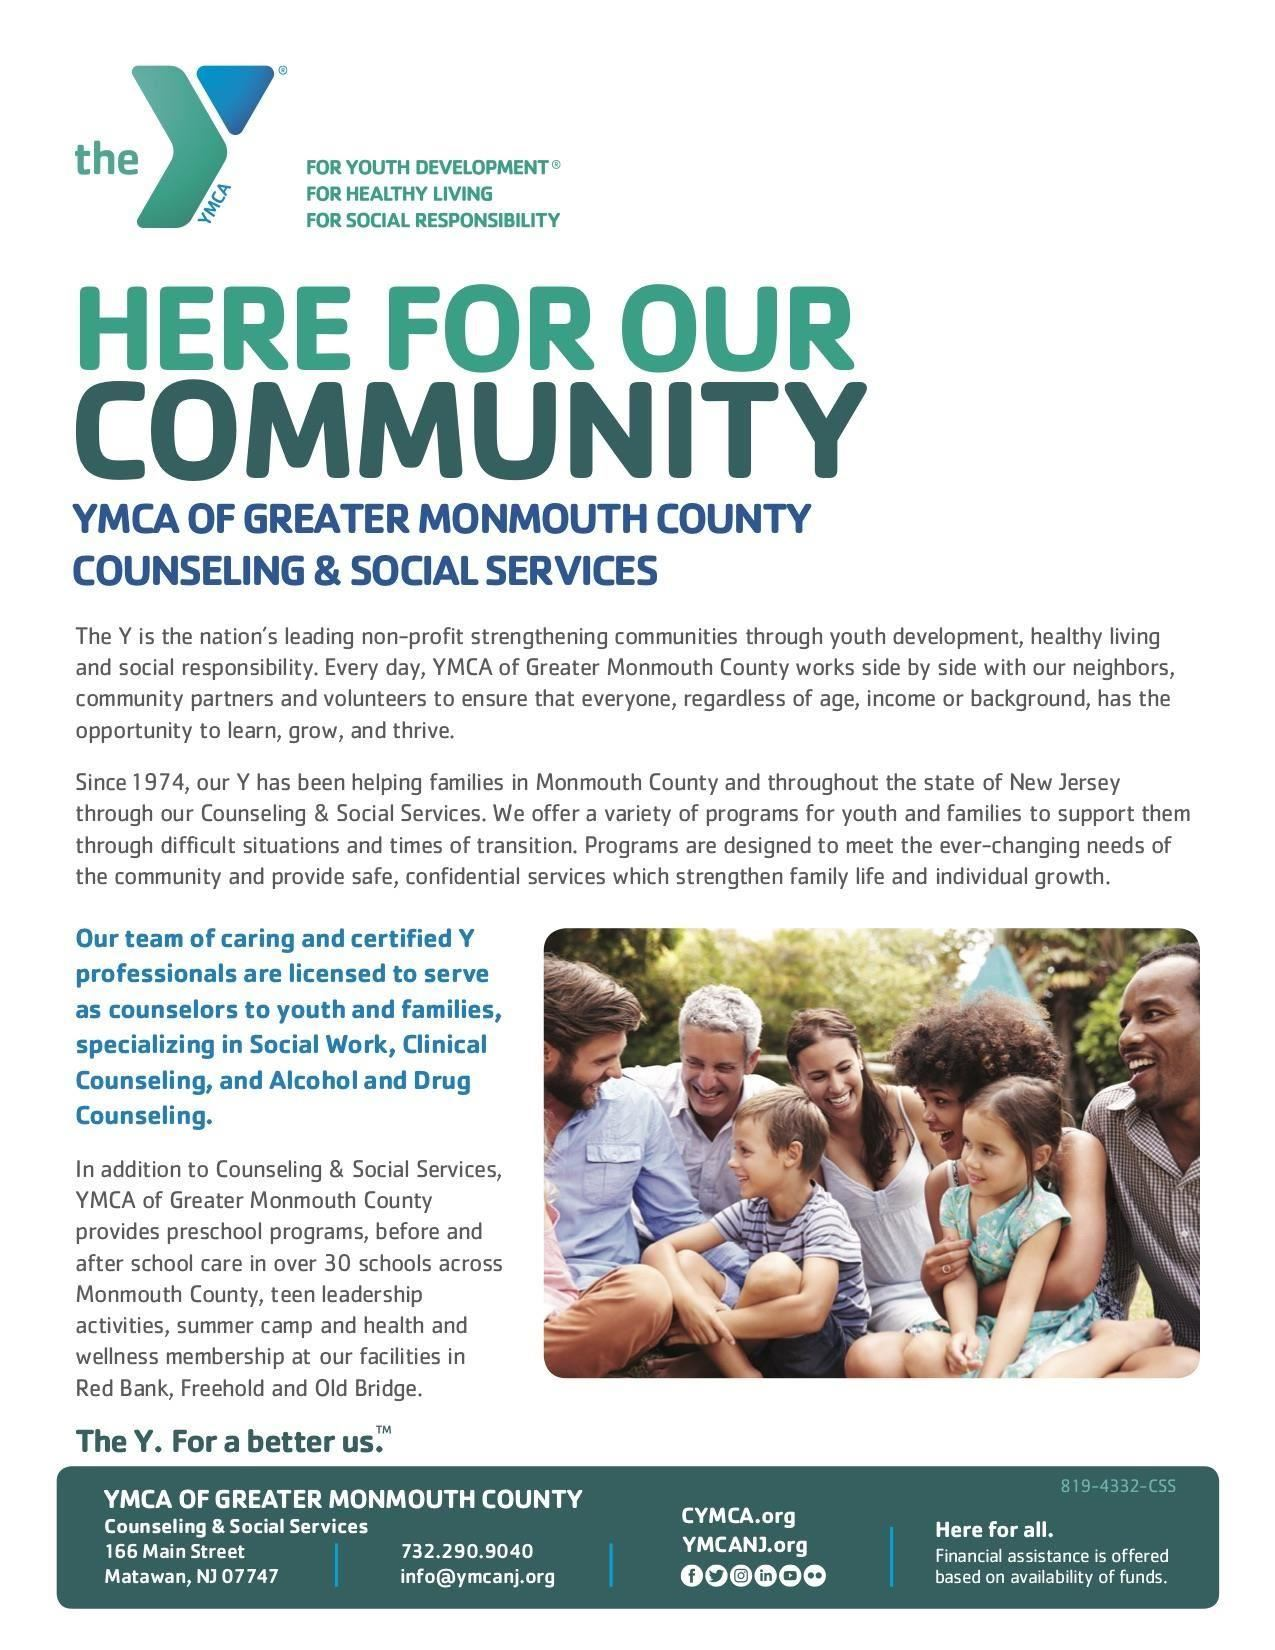 This is a YMCA document discussing available counseling and social services.